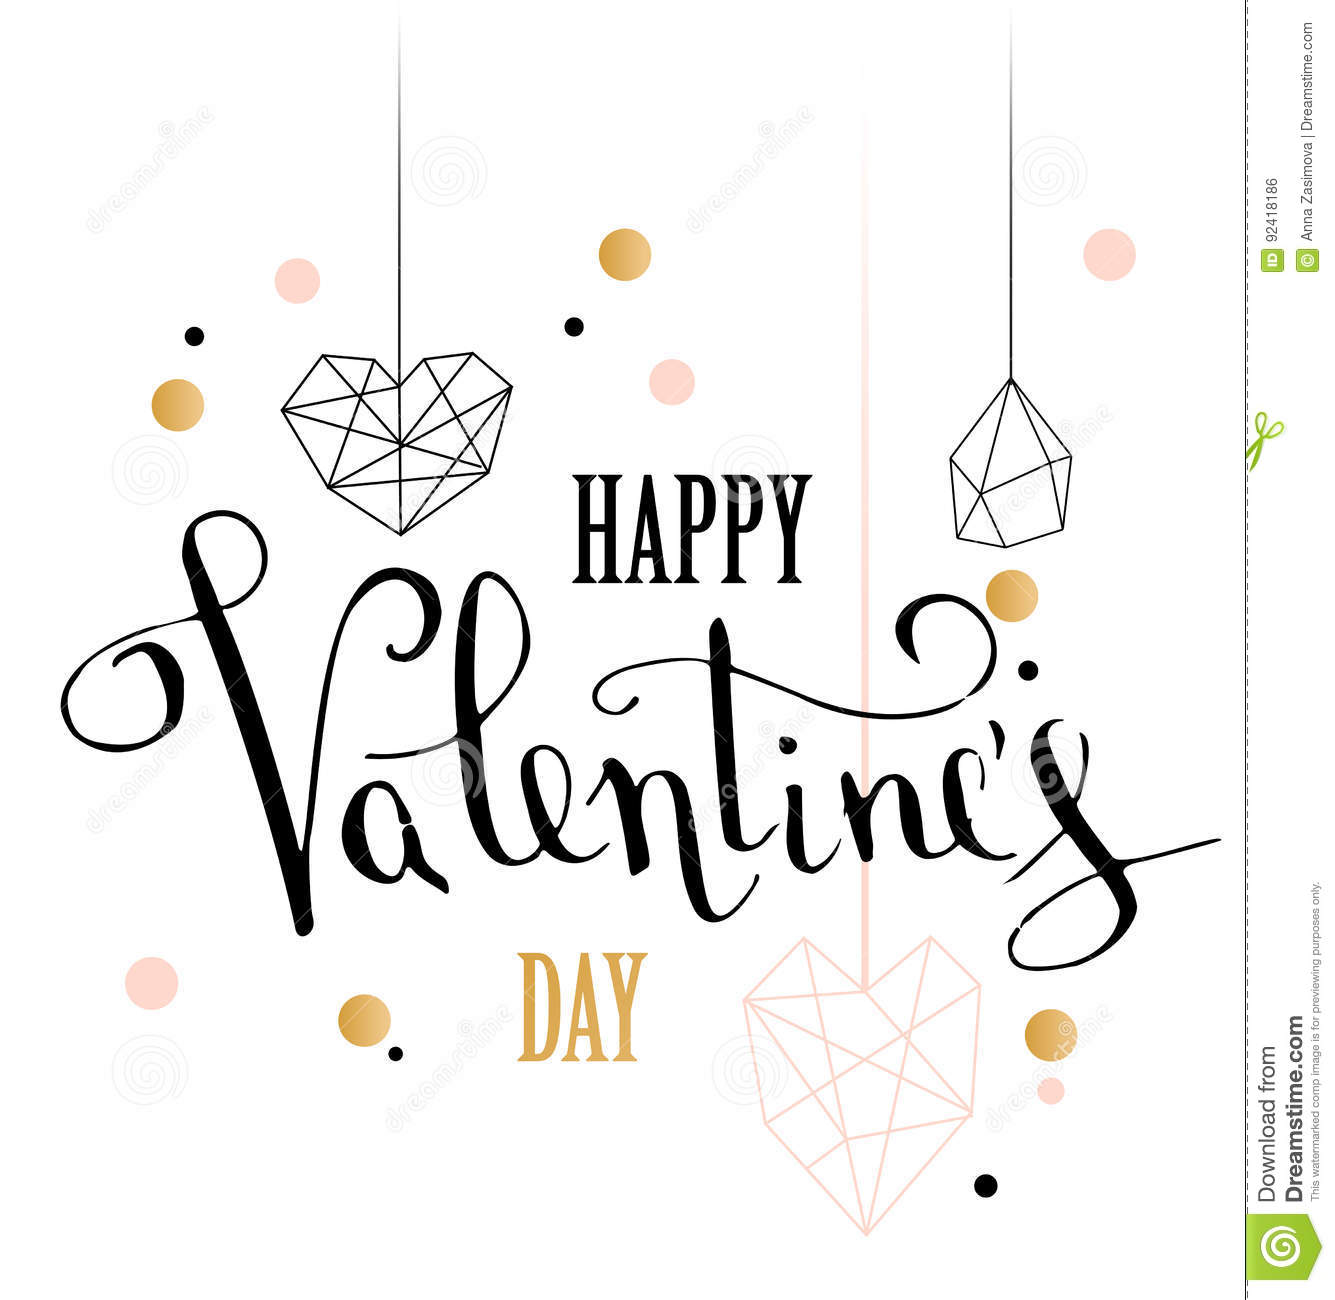 Happy Valentines Day Love Greeting Card With White Low